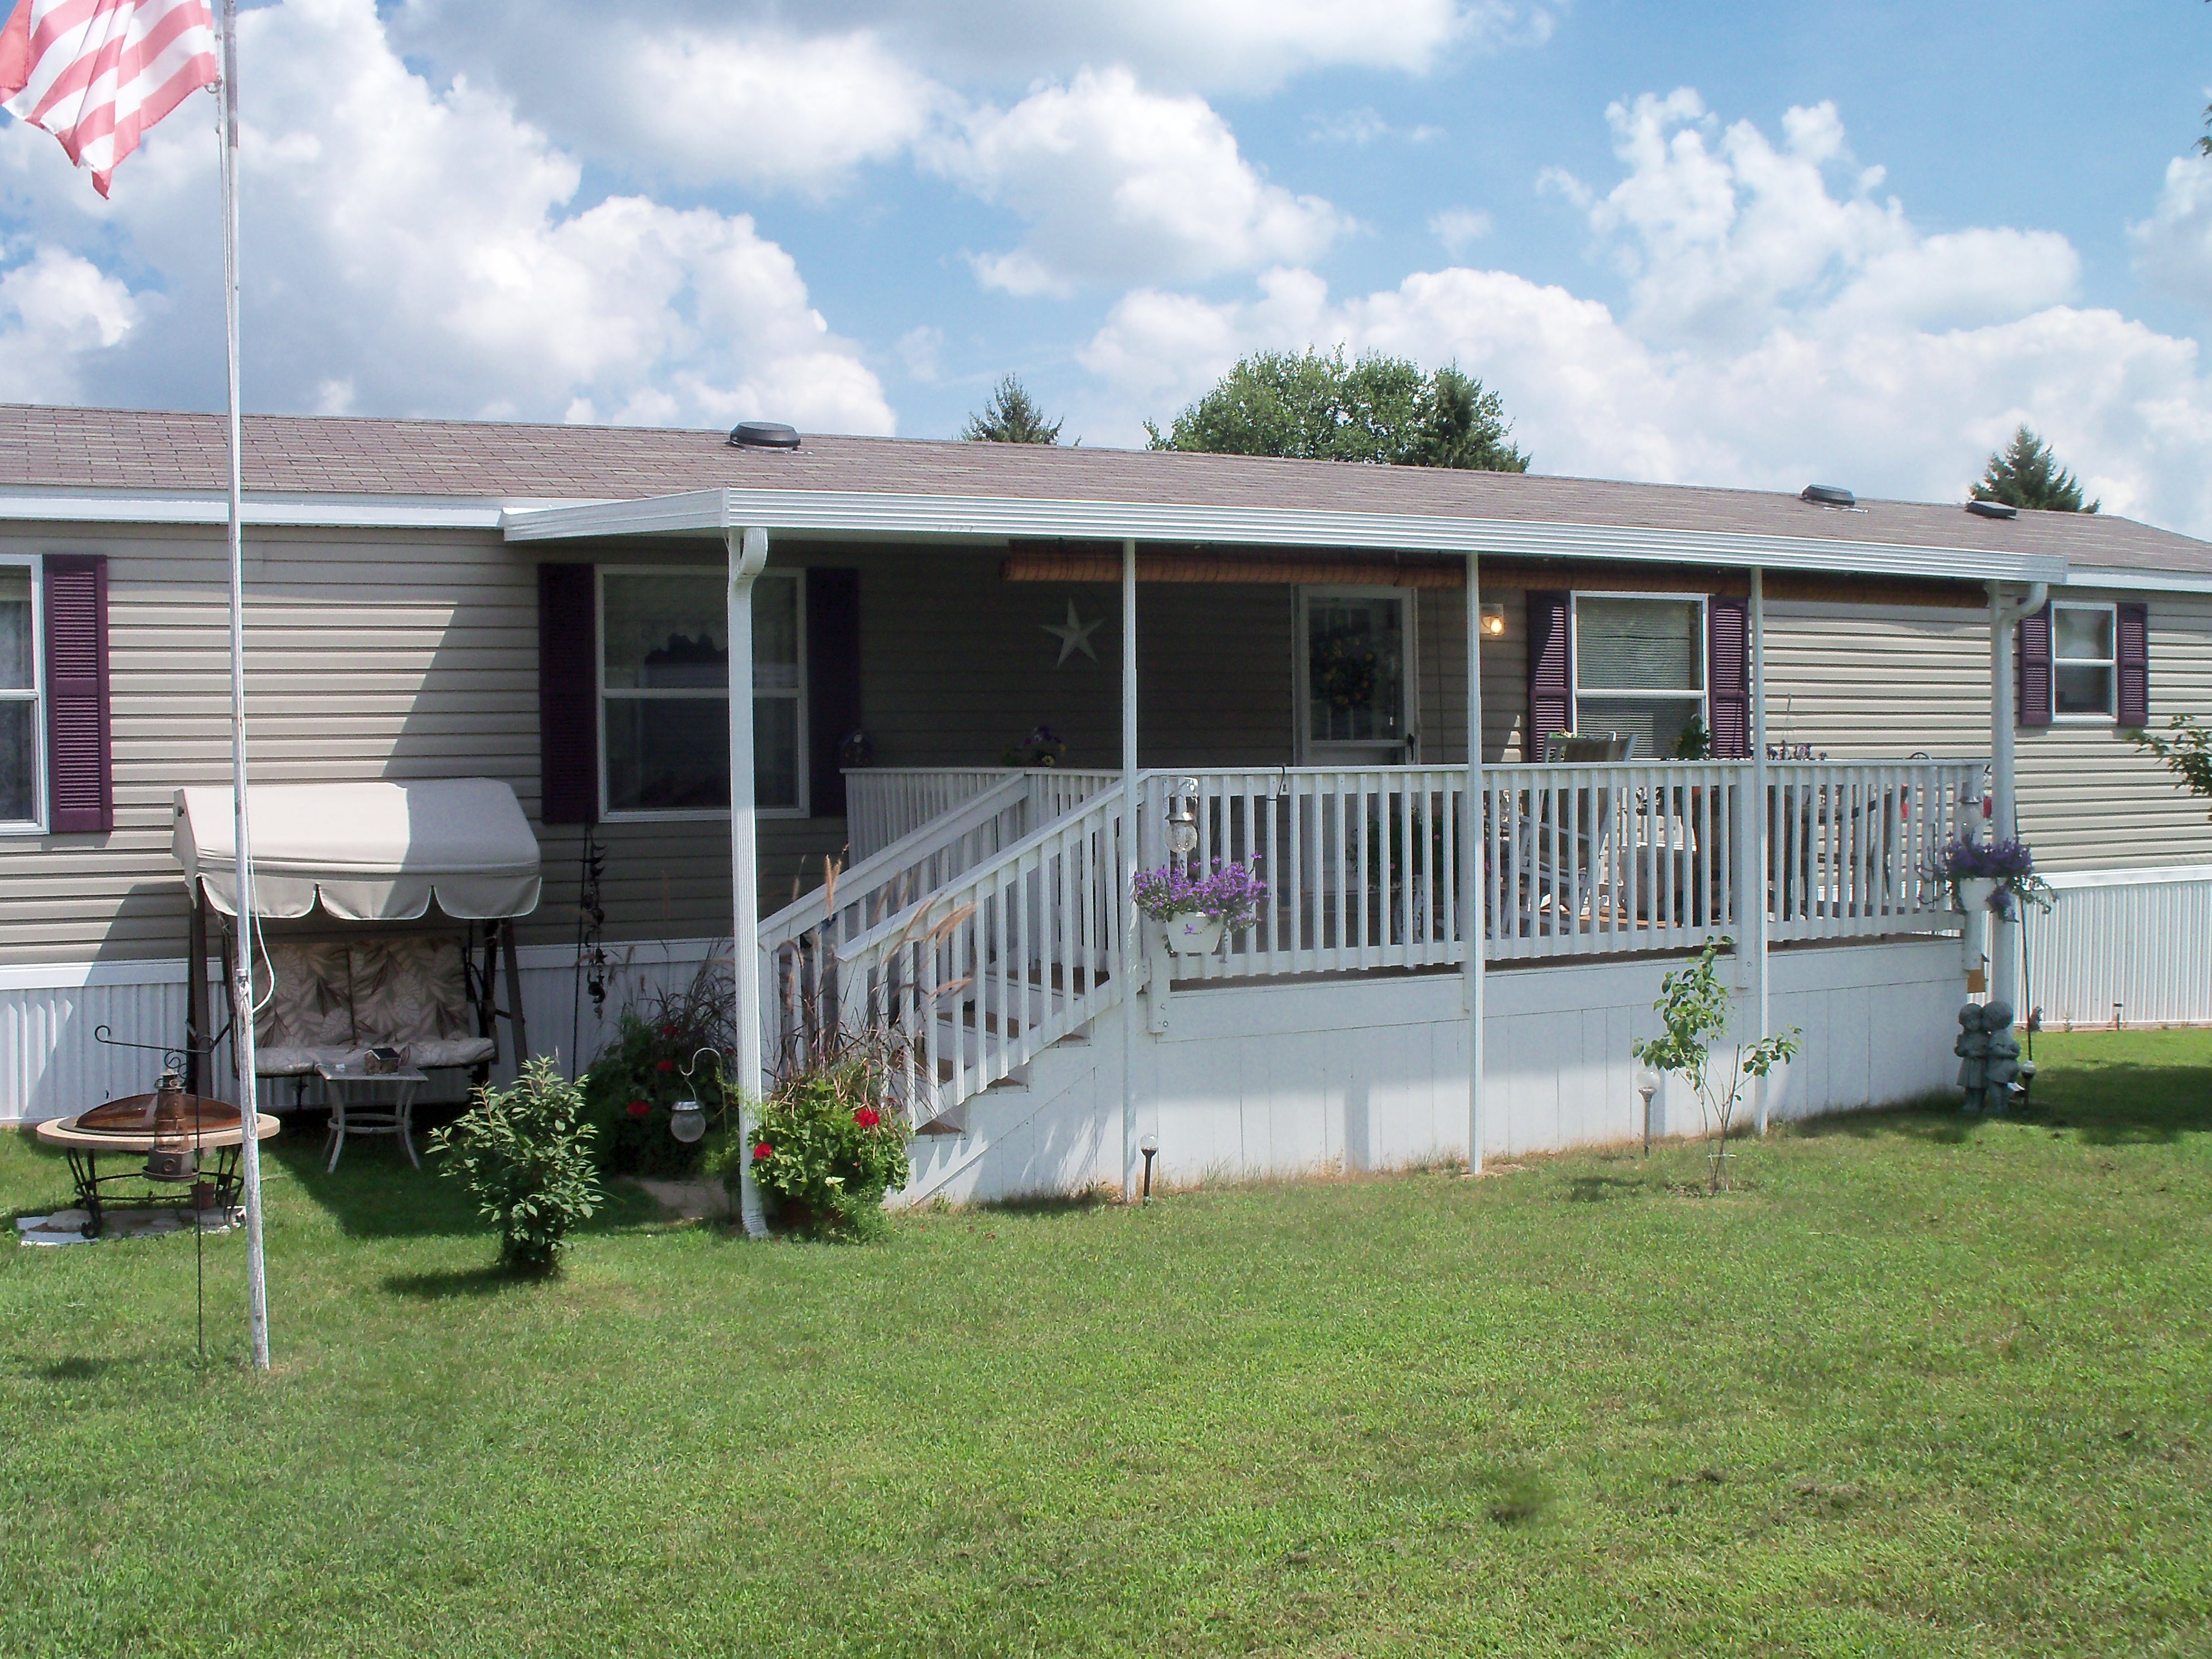 how deck a mo and osage patio to over ozark best lake home serving build beach awnings awning